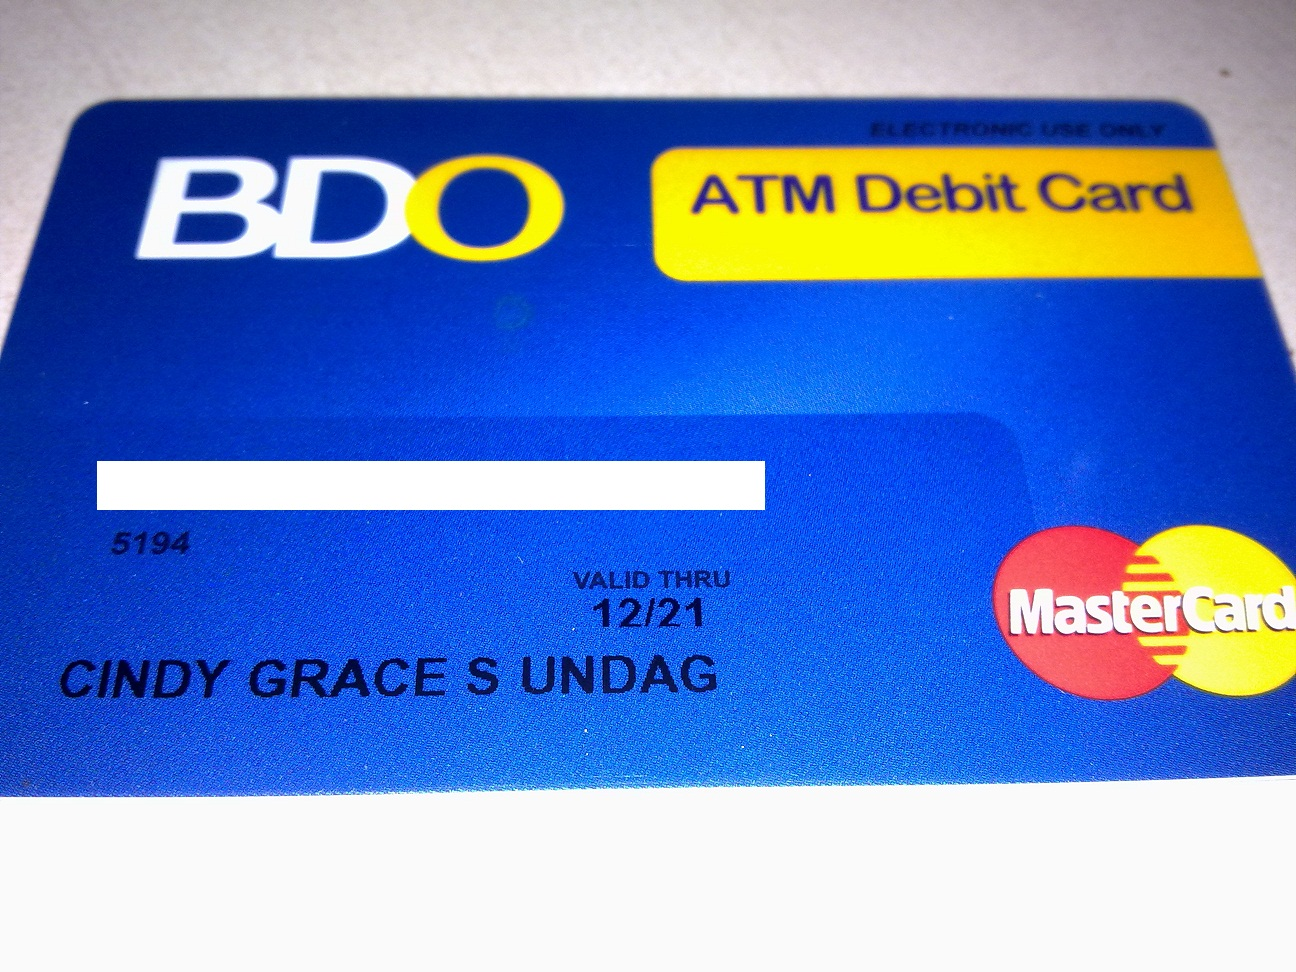 Debit card sample